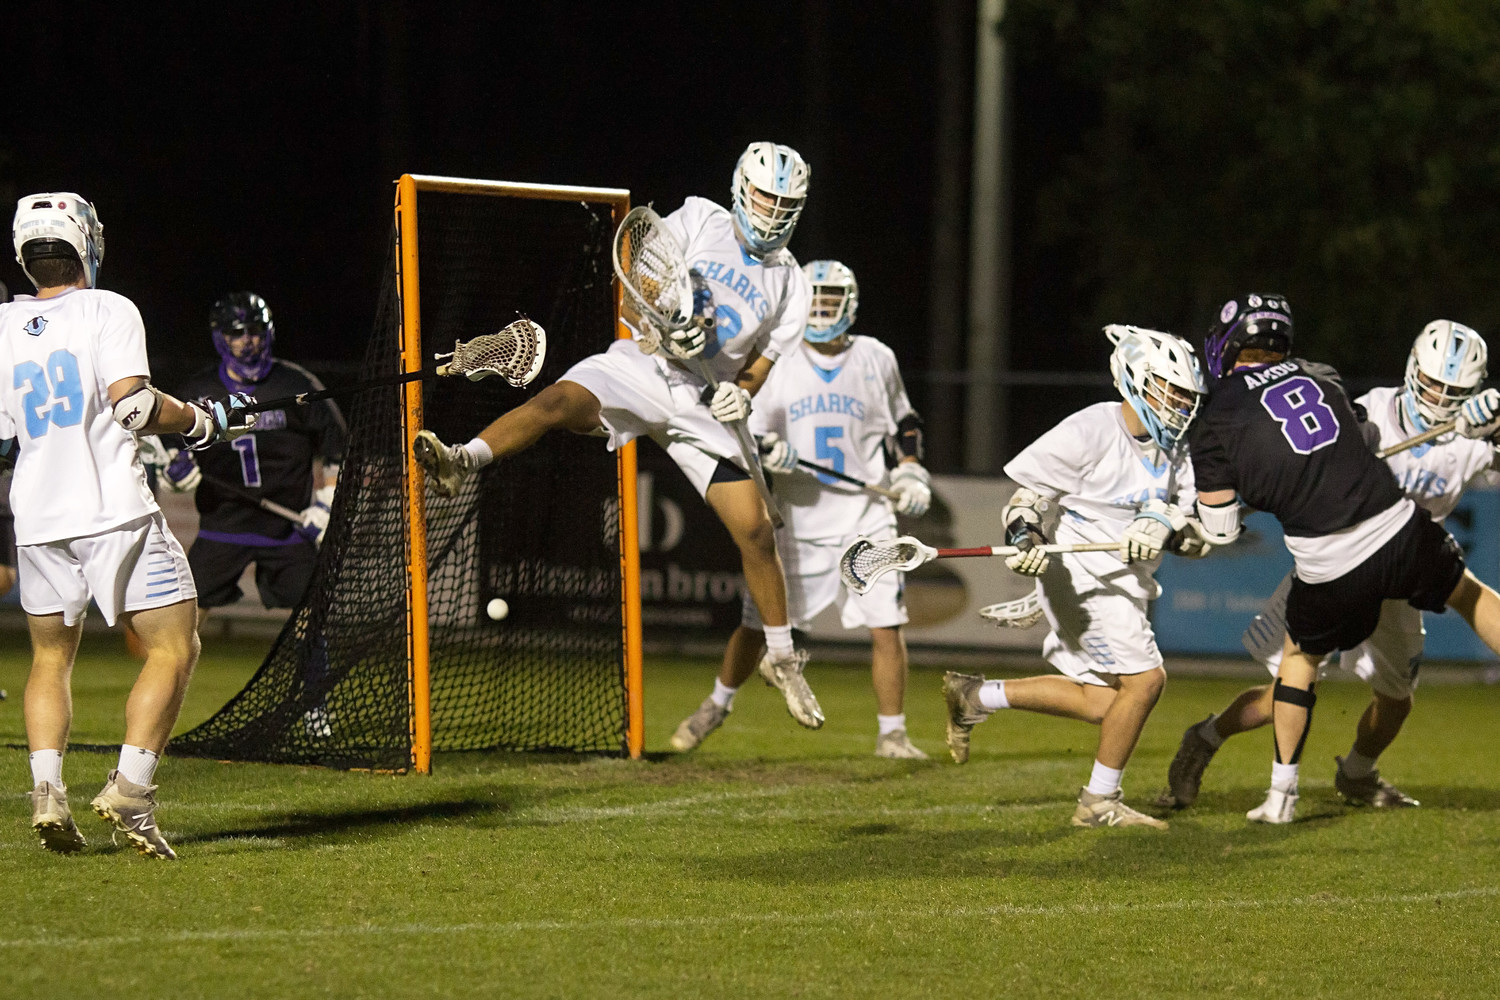 Ponte Vedra goalie Wyatt Schupler makes an acrobatic save against Gonzaga.